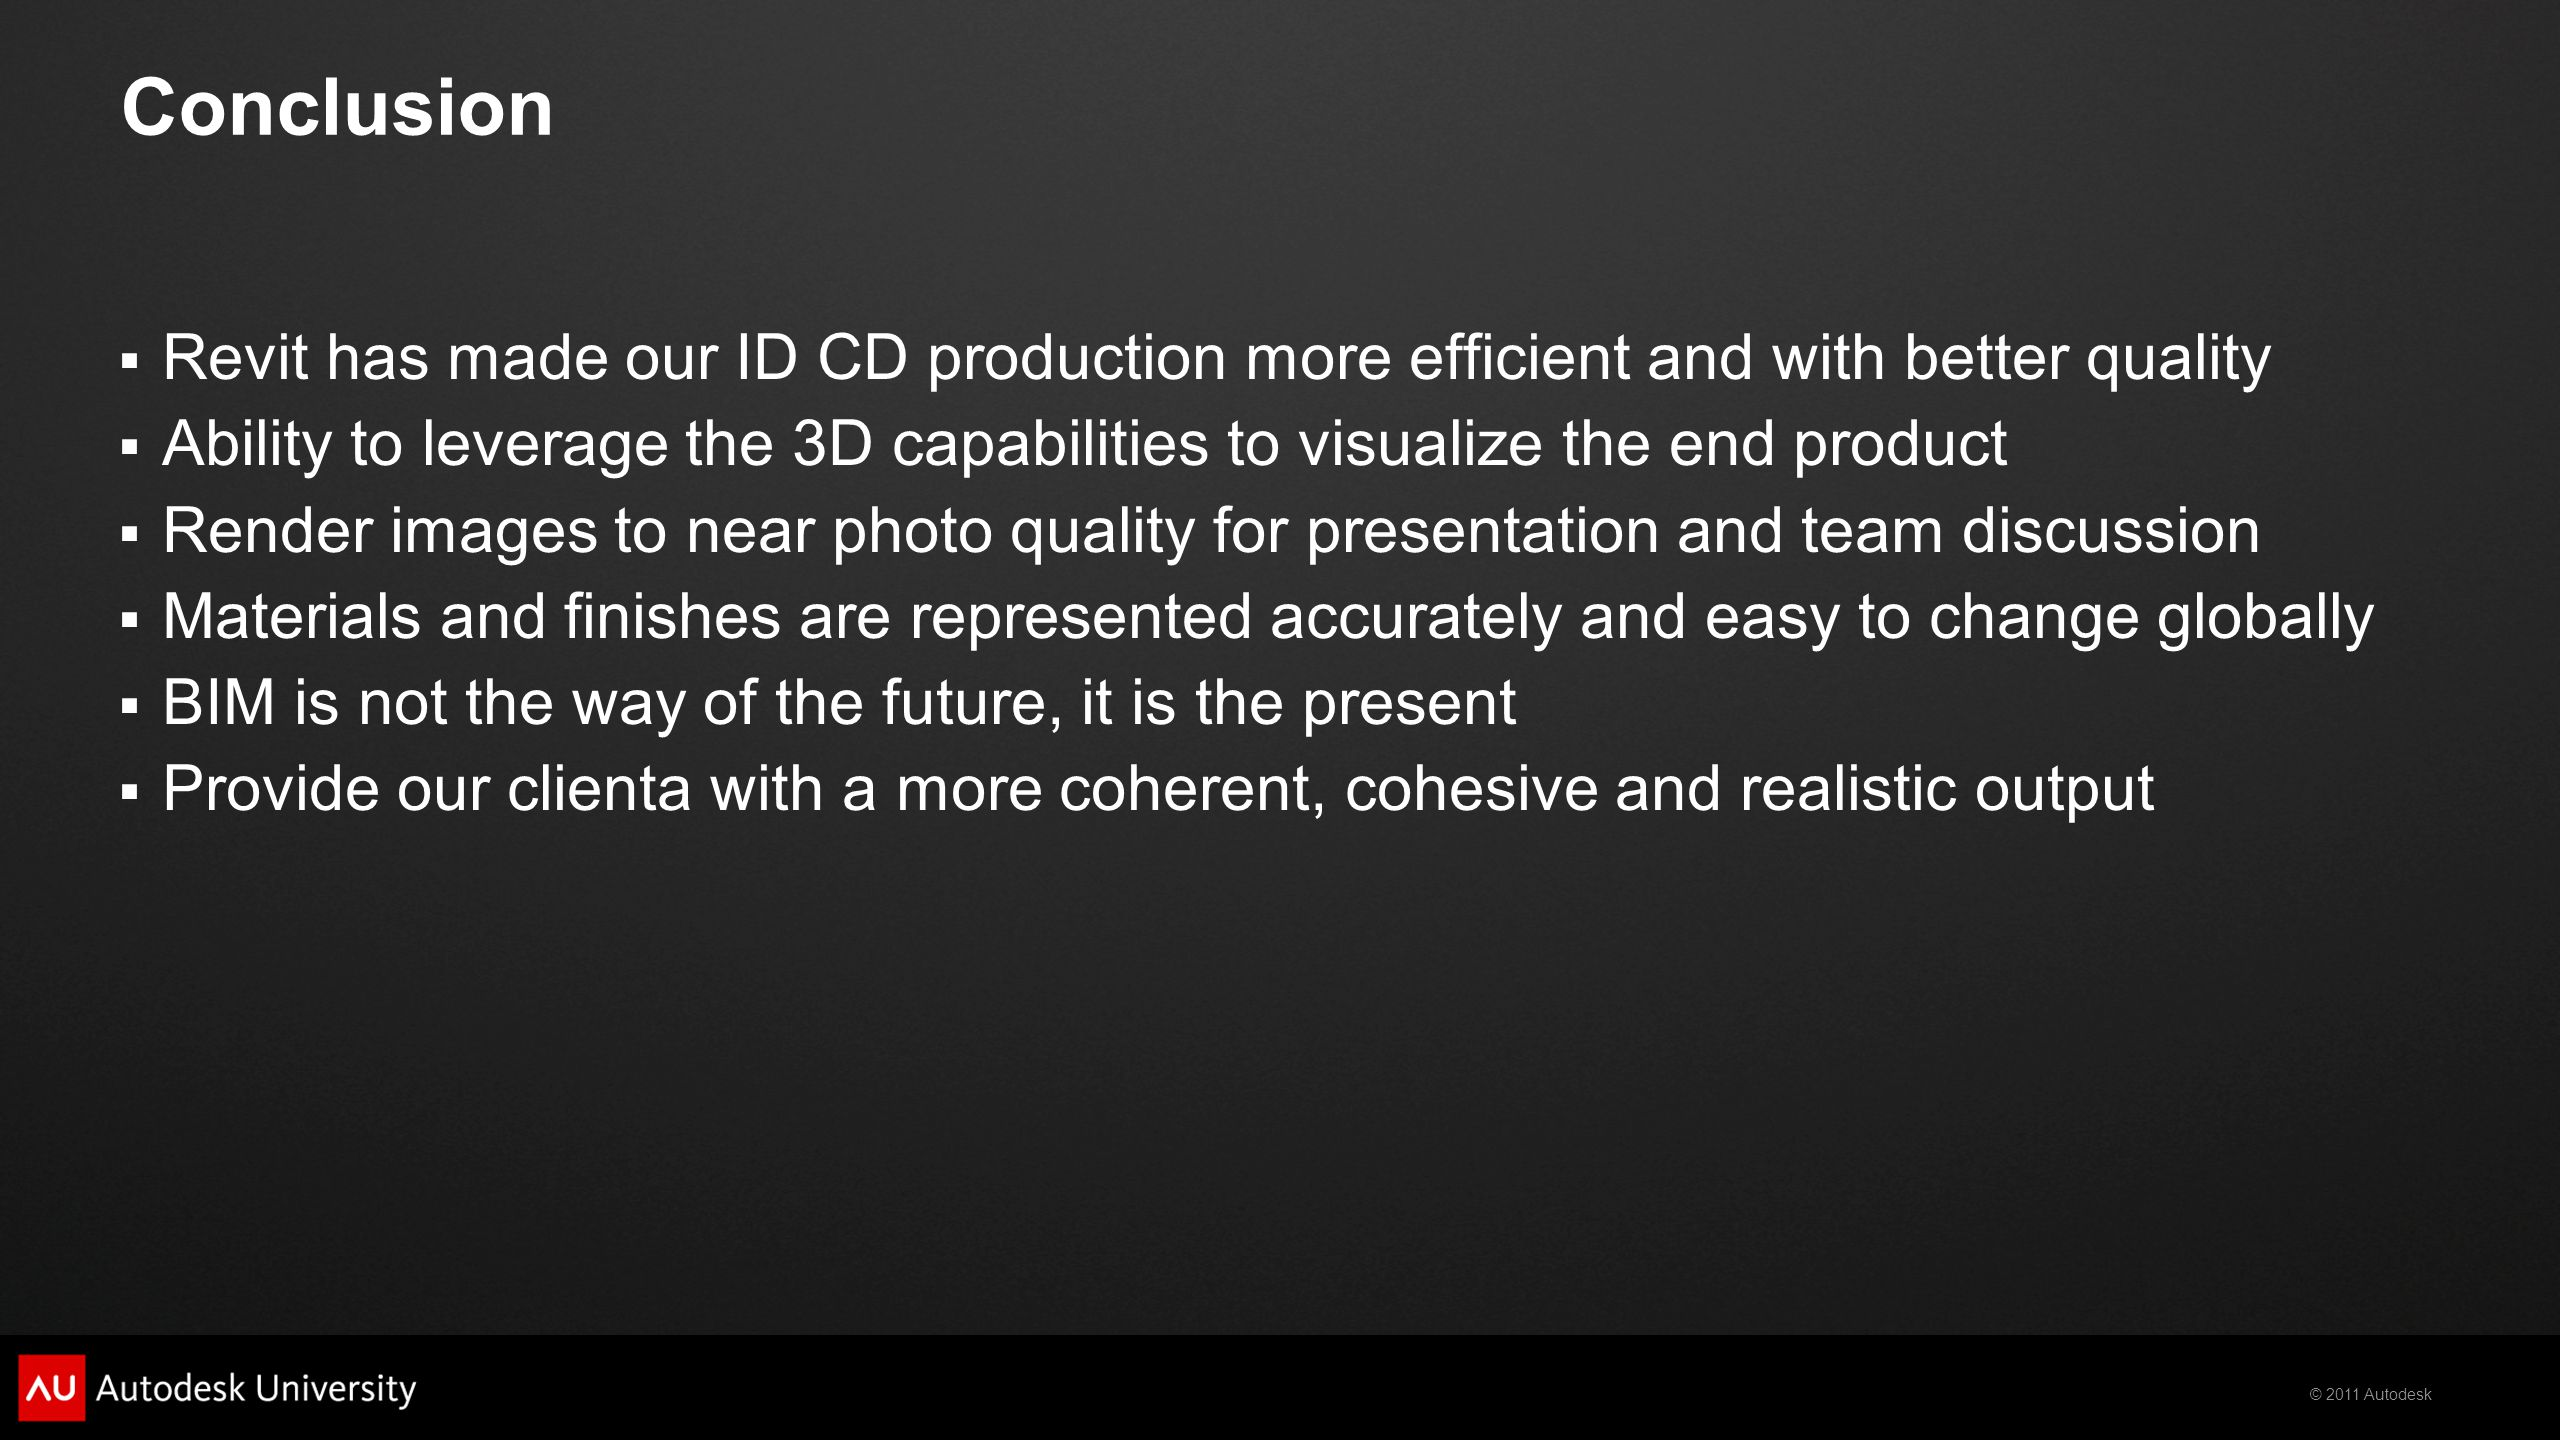 Conclusion Revit has made our ID CD production more efficient and with better quality.